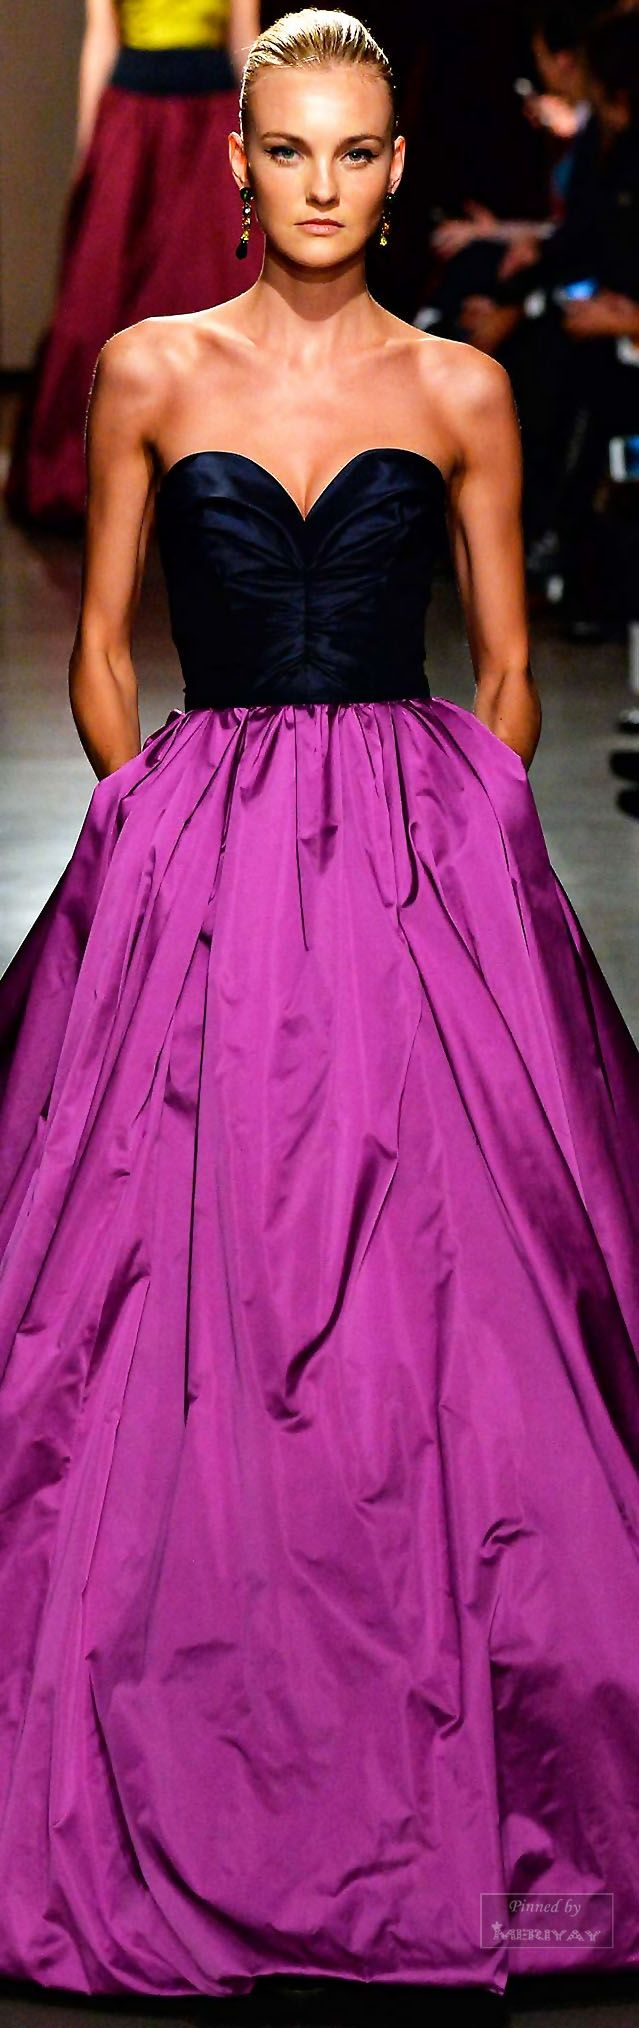 Stunning!!  Oscar de la Renta.Fall-winter 2015-2016.